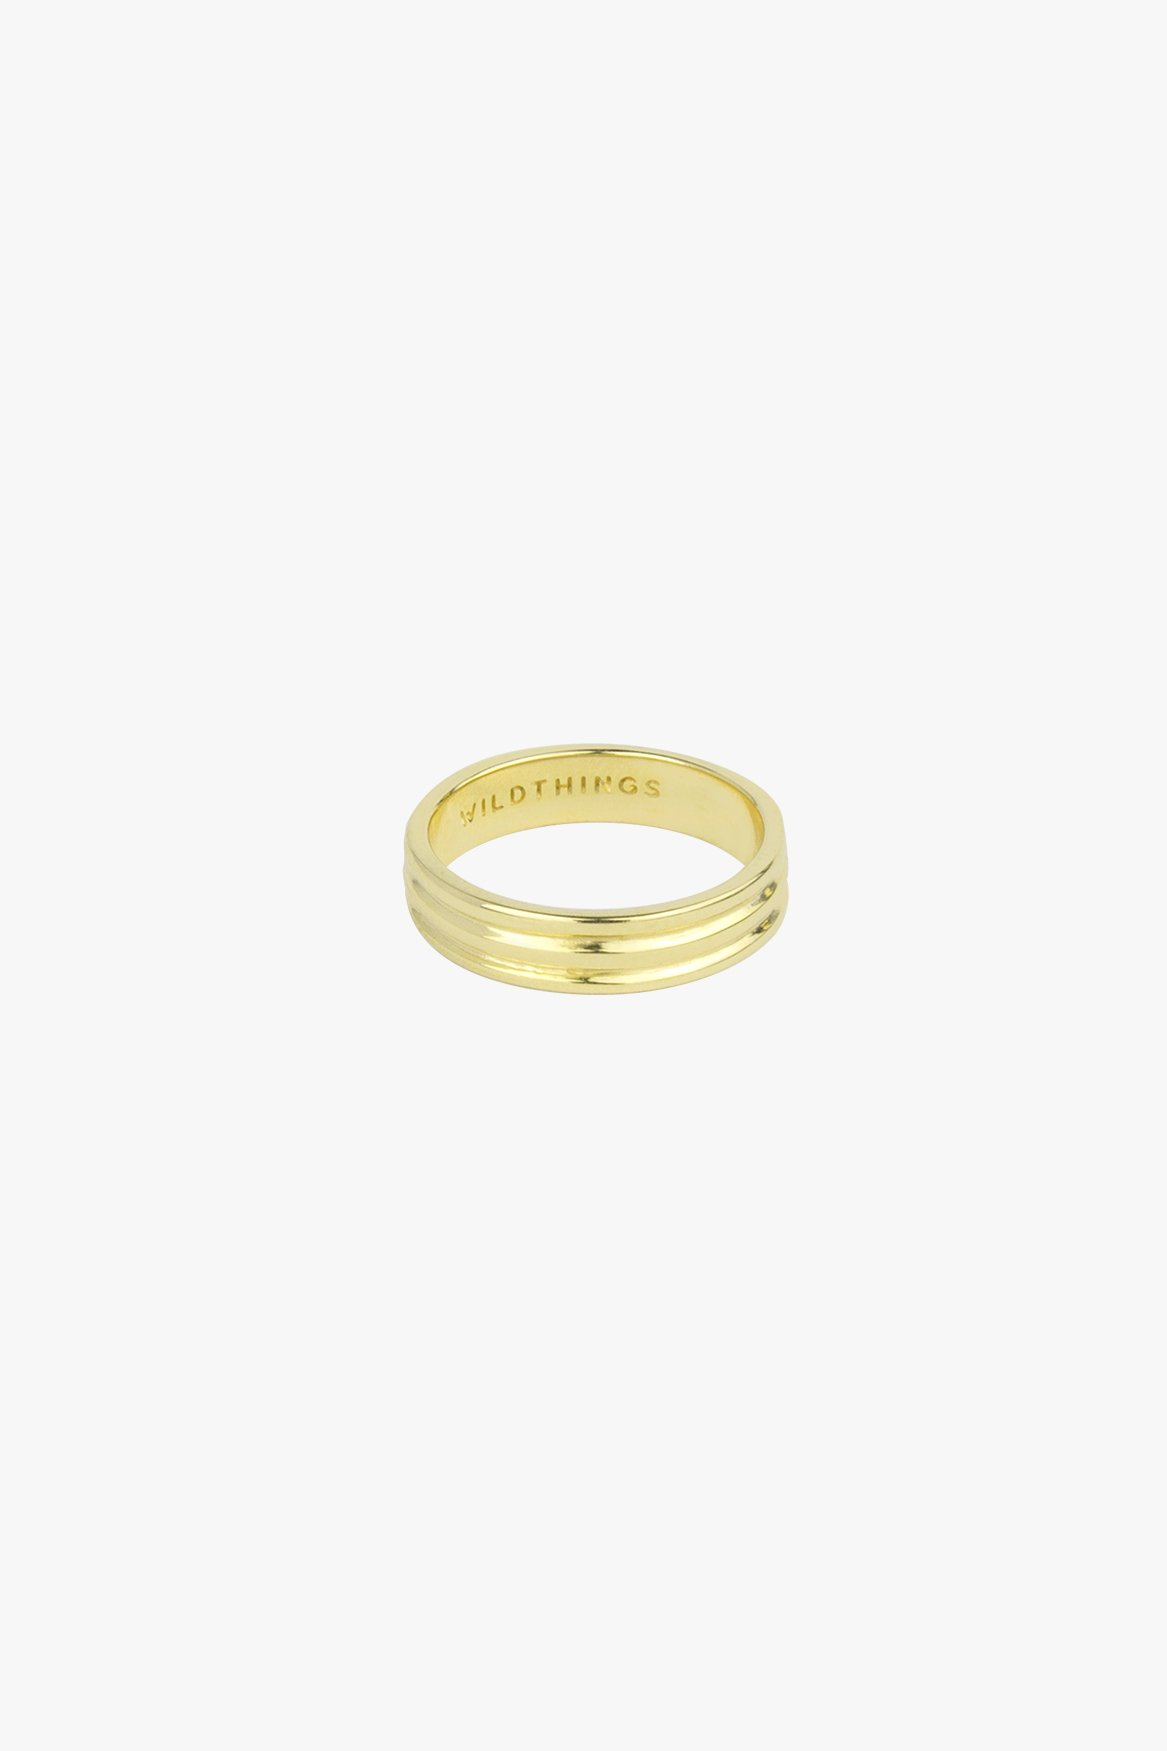 wildthings collectables Triple pinky band gold